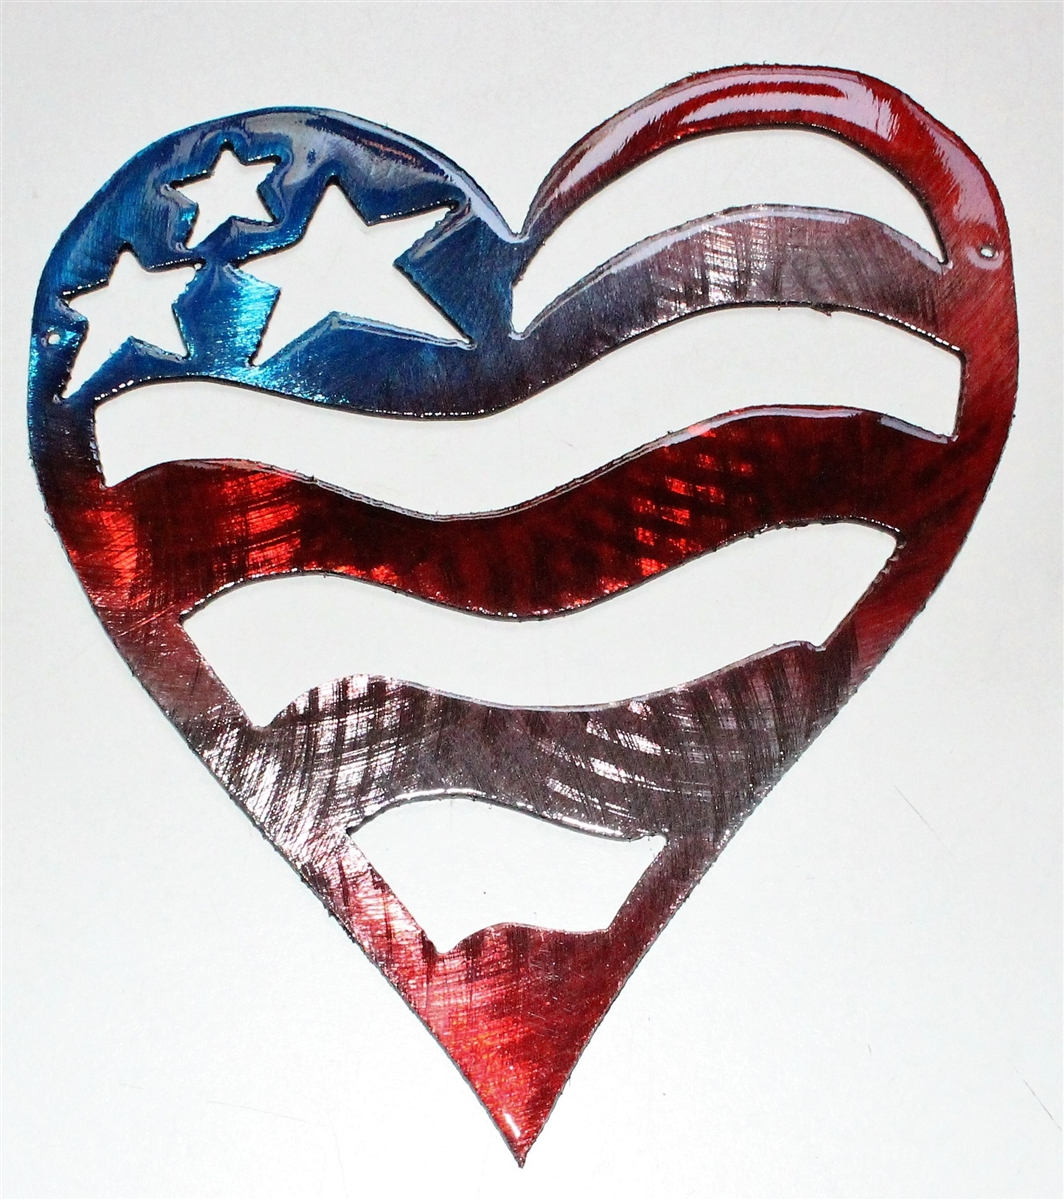 Starheartrwb7 2g1494789078 patriotic heart metal wall art amipublicfo Images